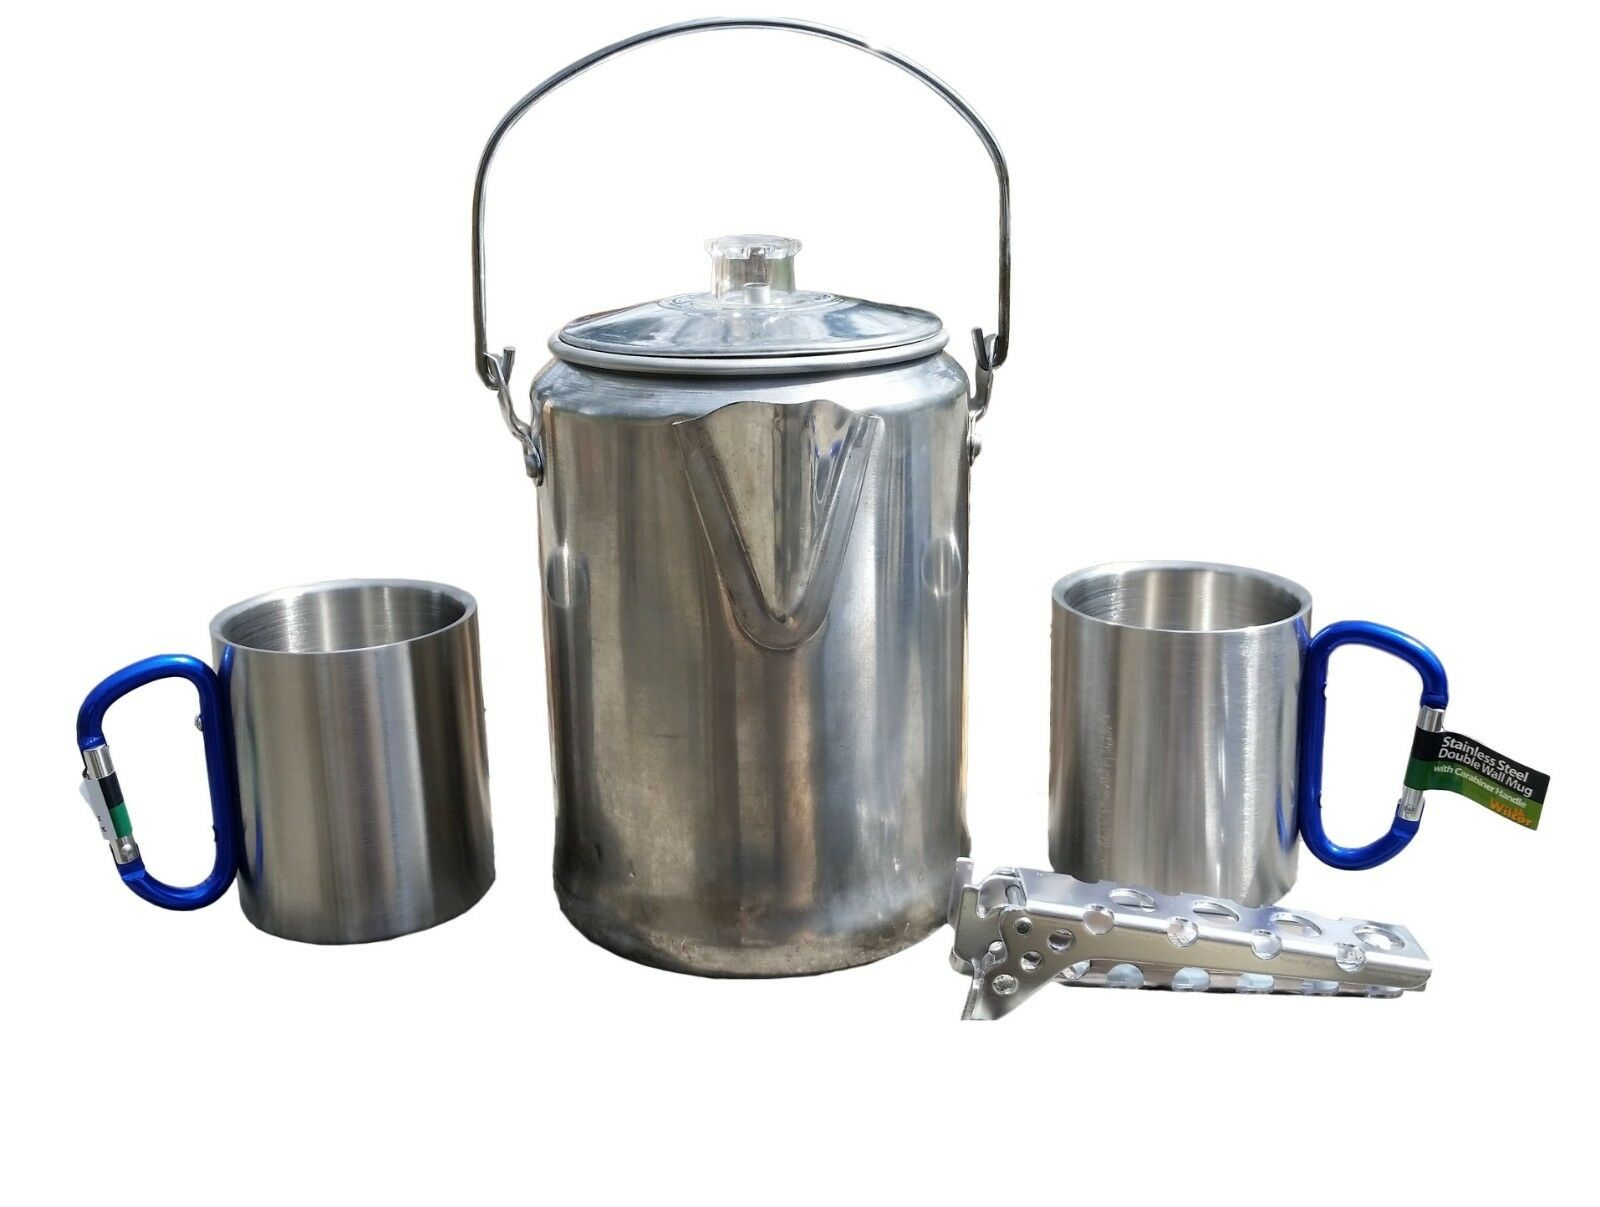 Camping Coffee Pot Set with 2 Carabiner Mugs and Hot Handle Pot Holder